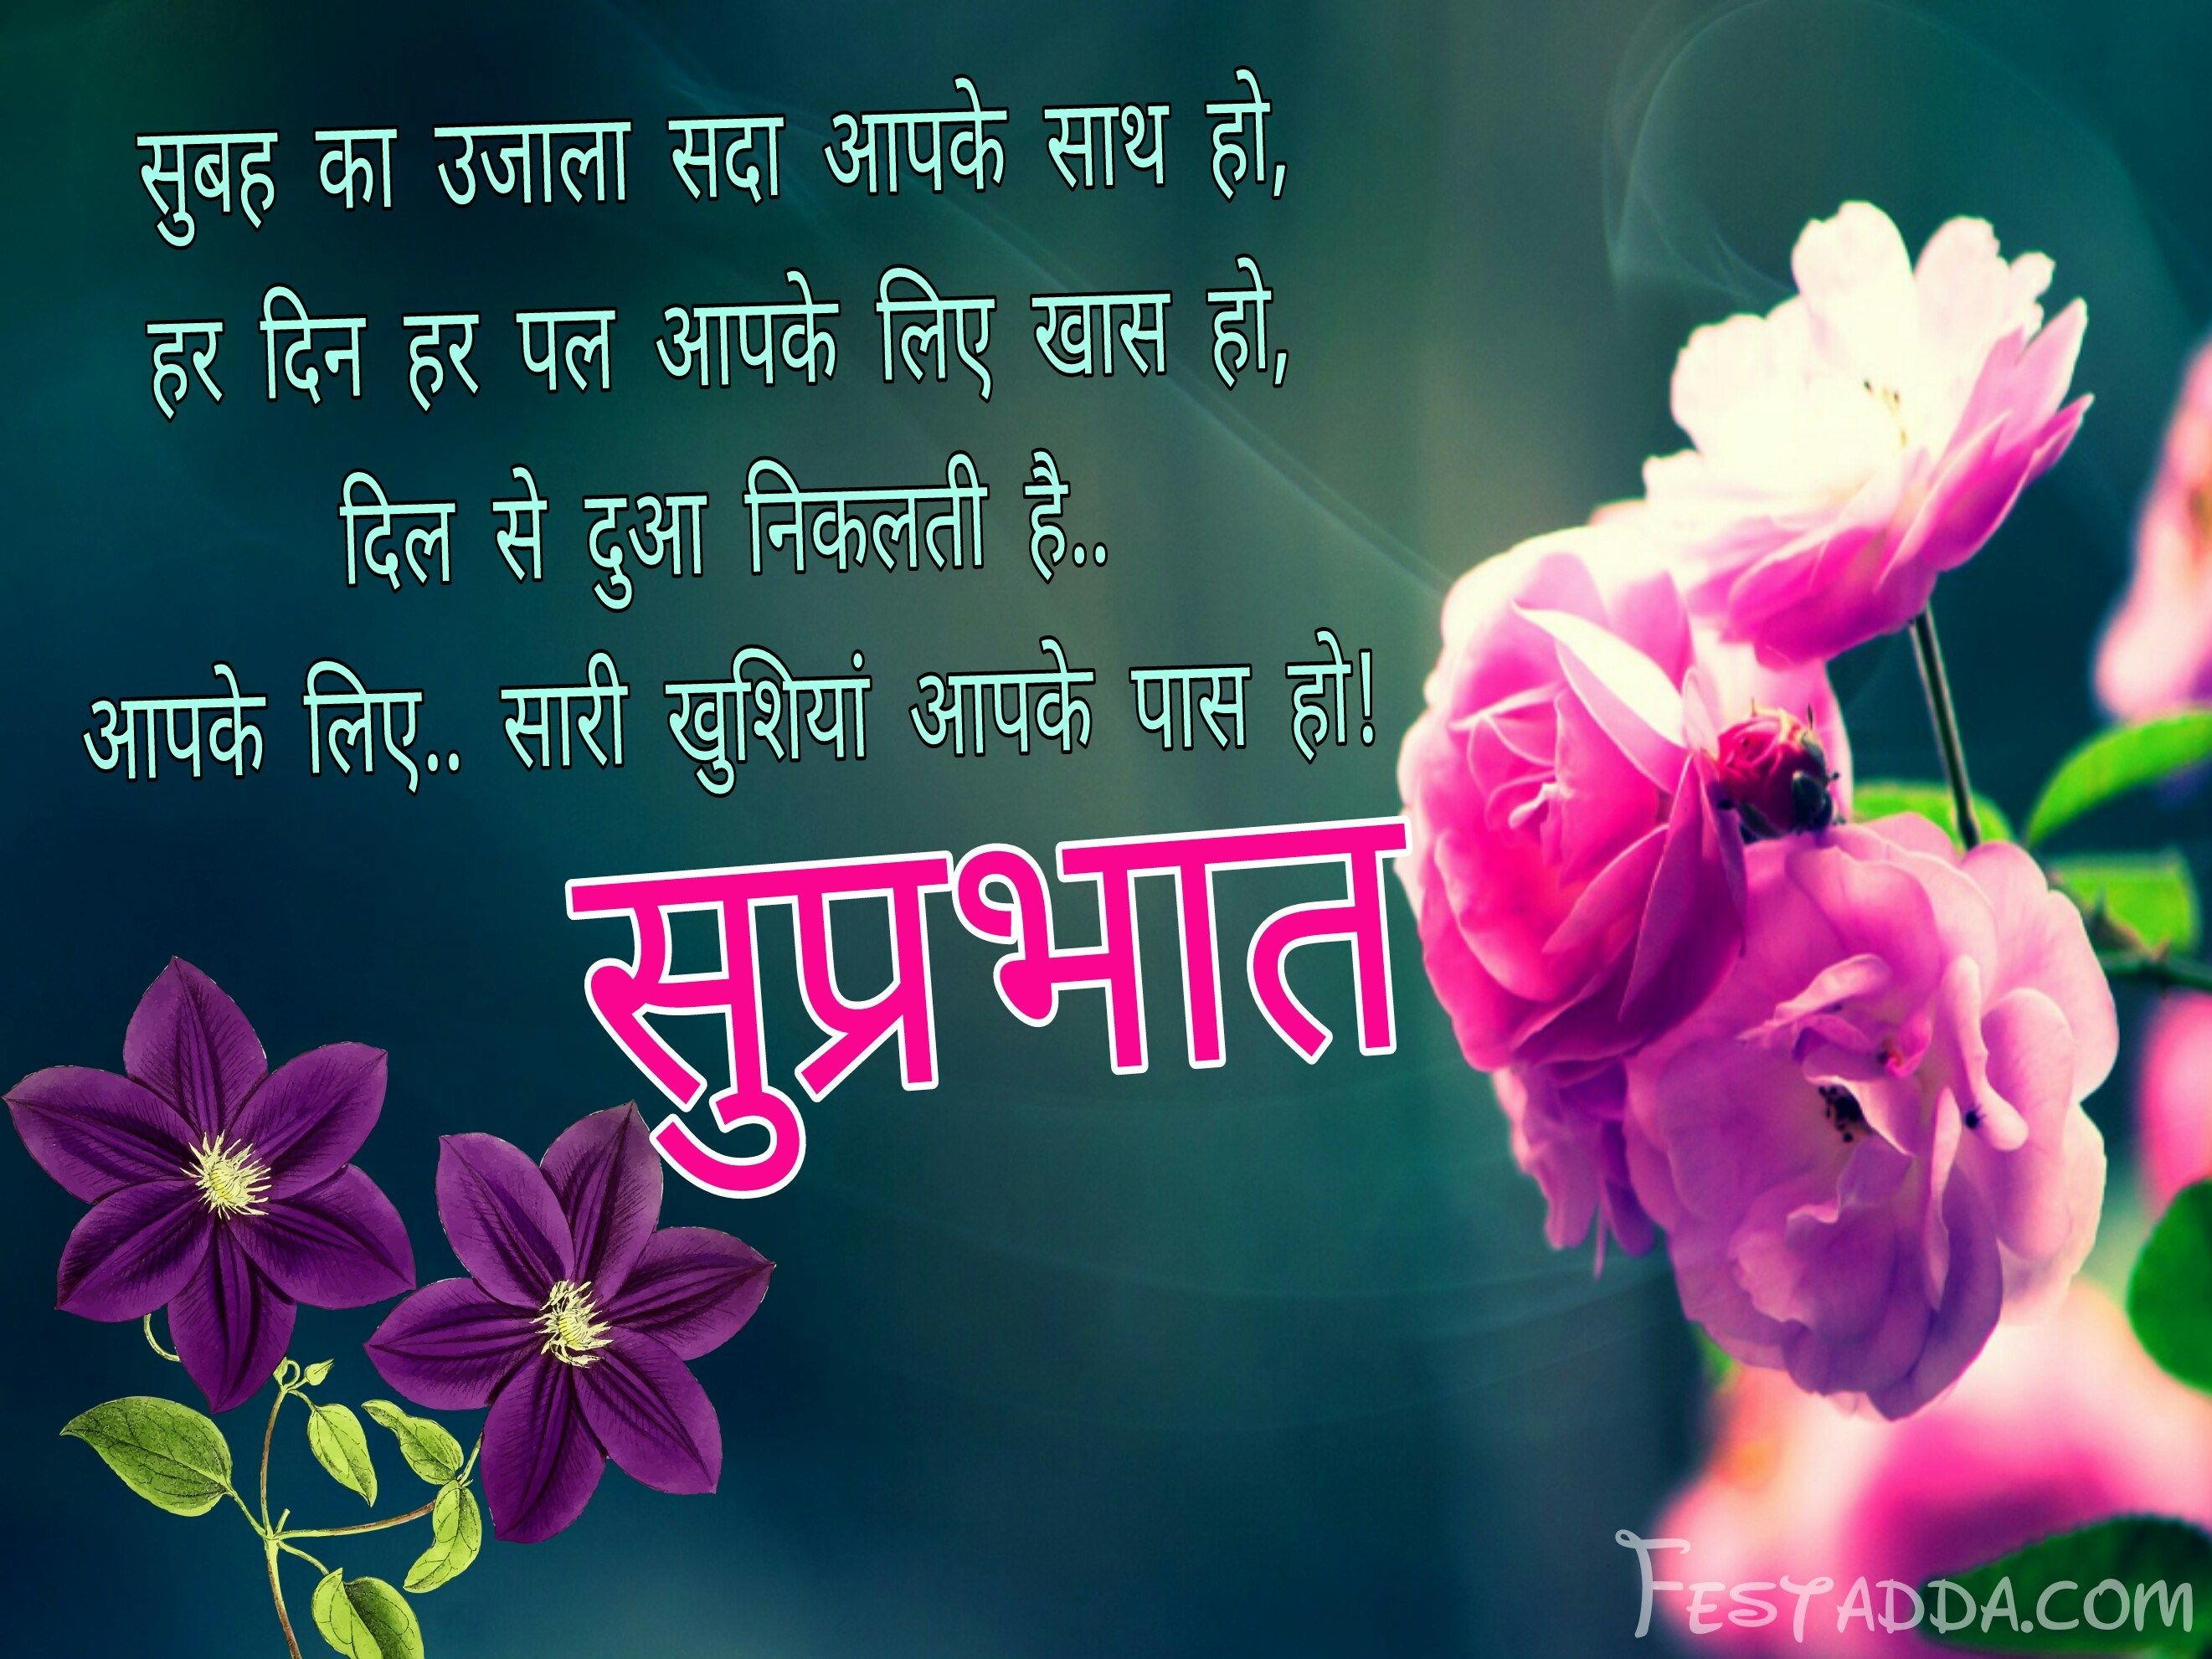 Good Morning Images With Quotes In Hindi | Morning images ...